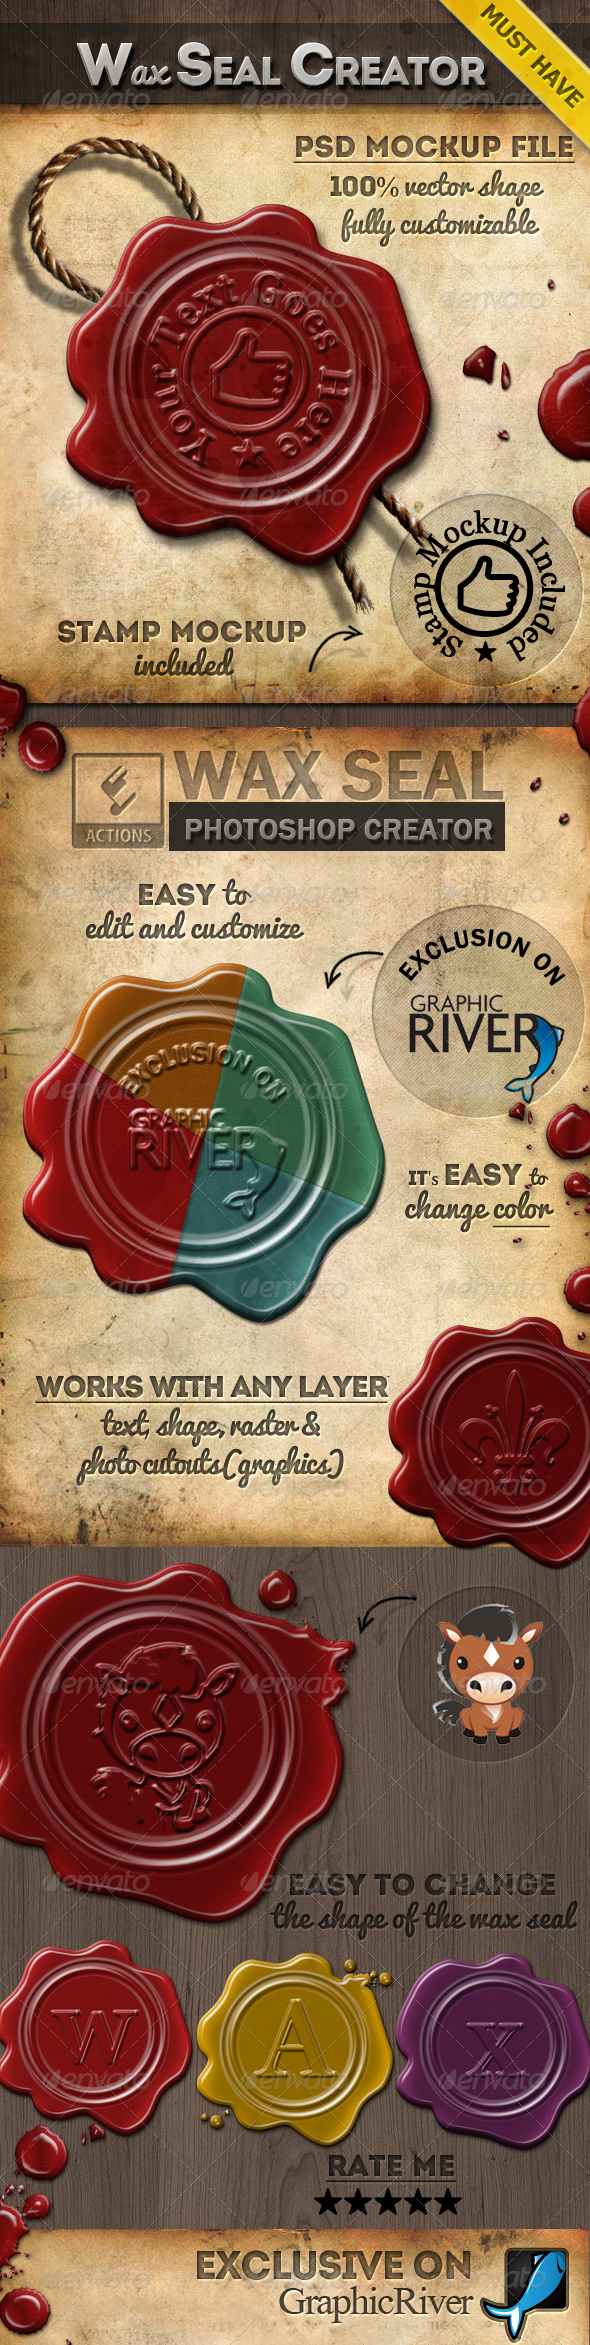 GraphicRiver Wax Stamp Seal Photoshop Creator 7841278